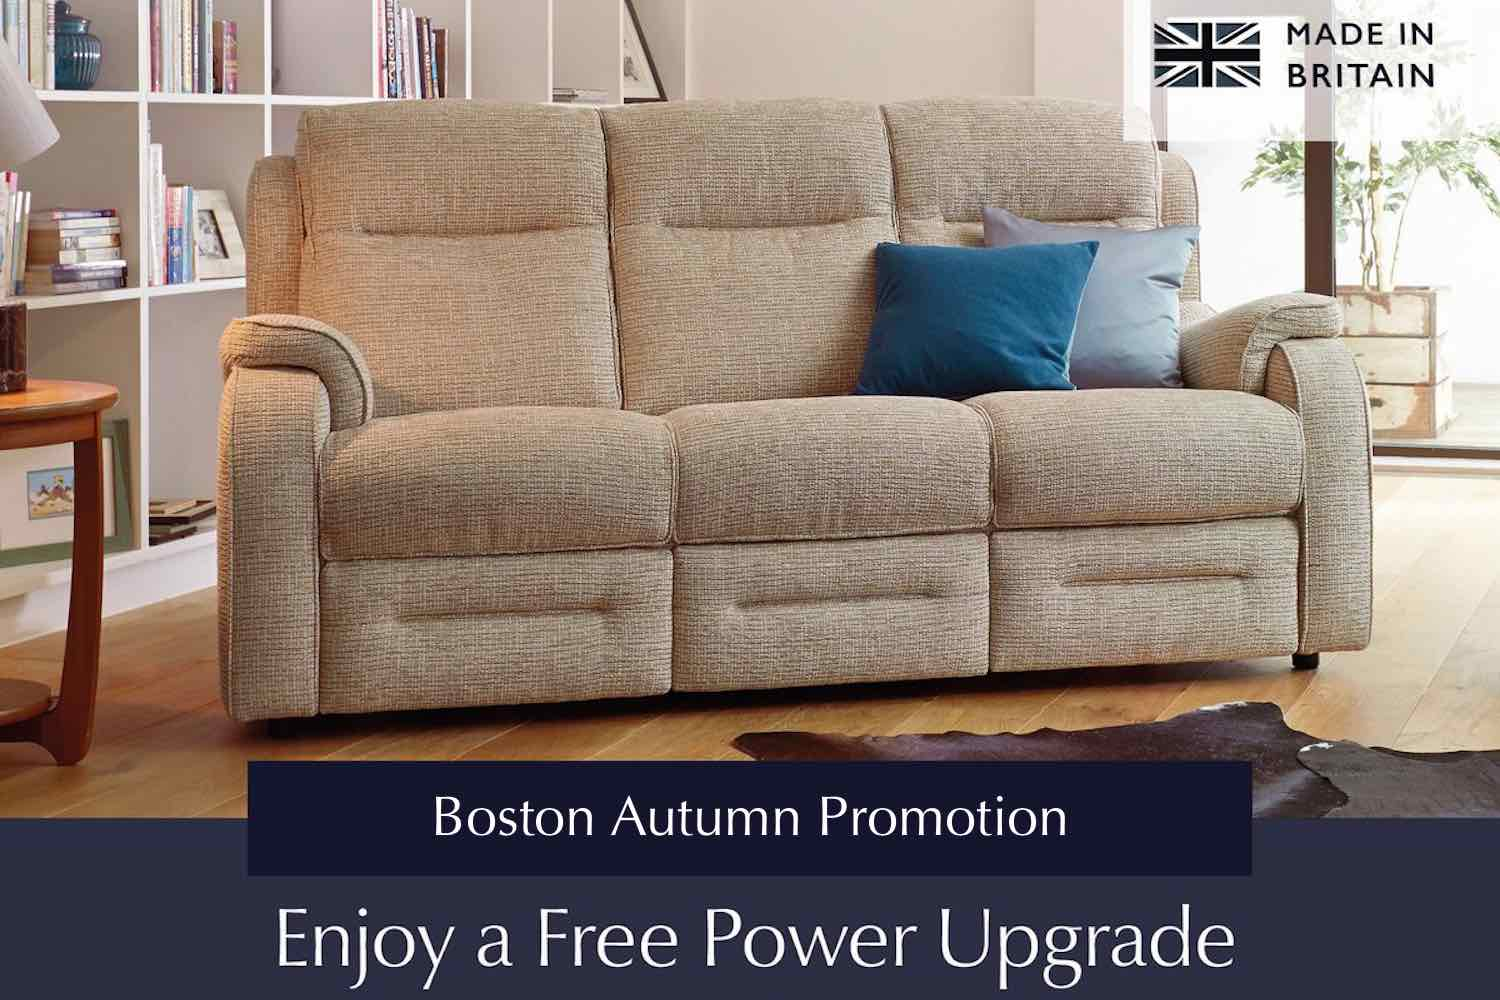 Parker Knoll free upgrade promotion